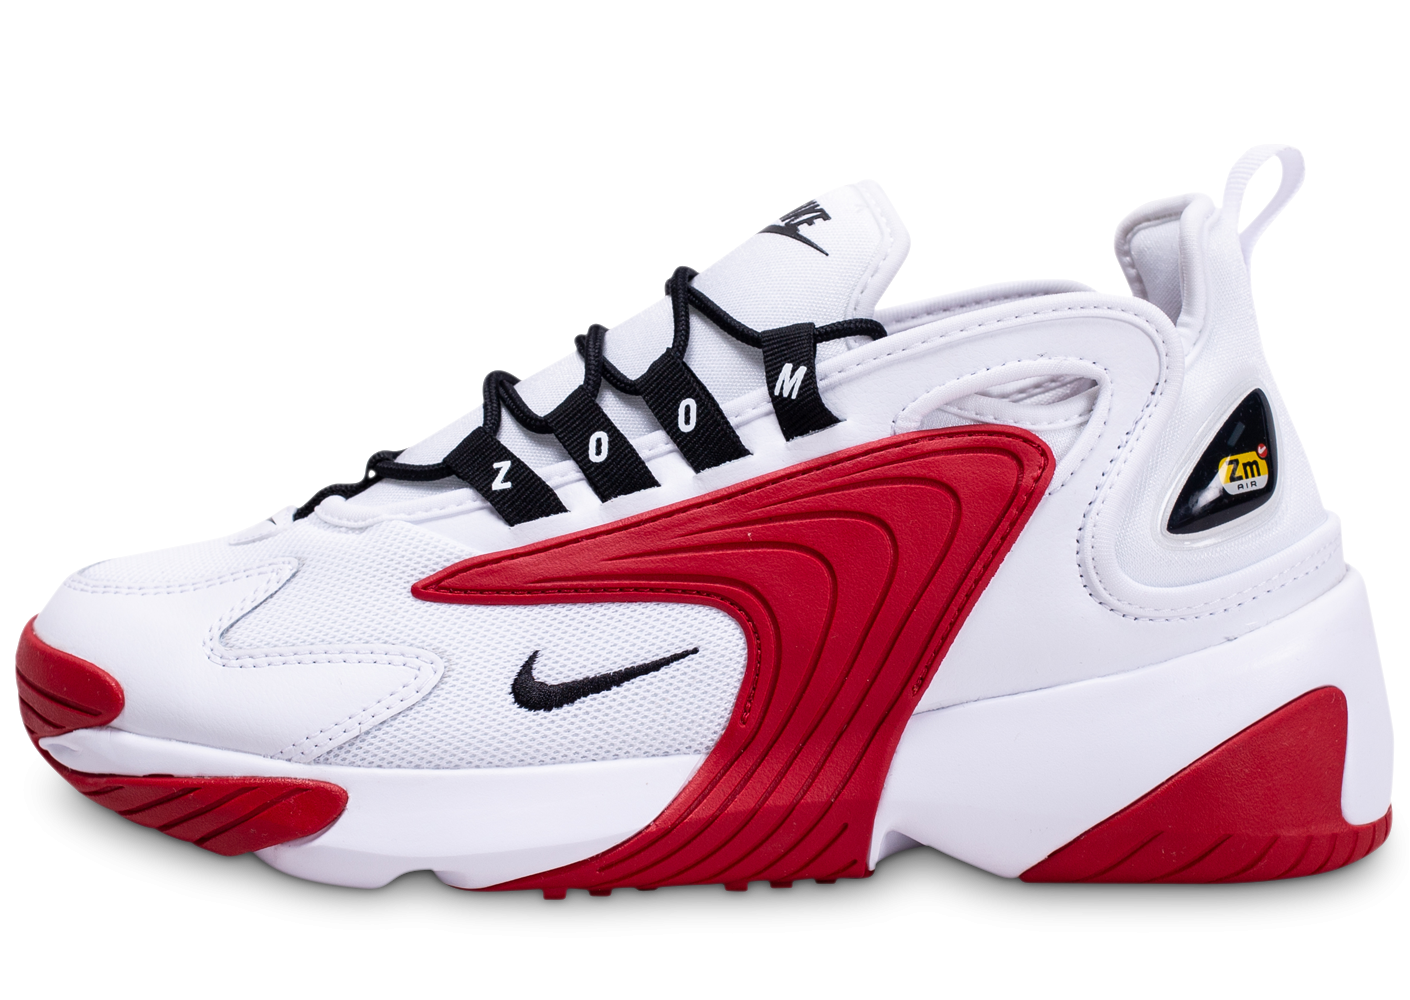 Nike Zoom 2K blanche et rouge